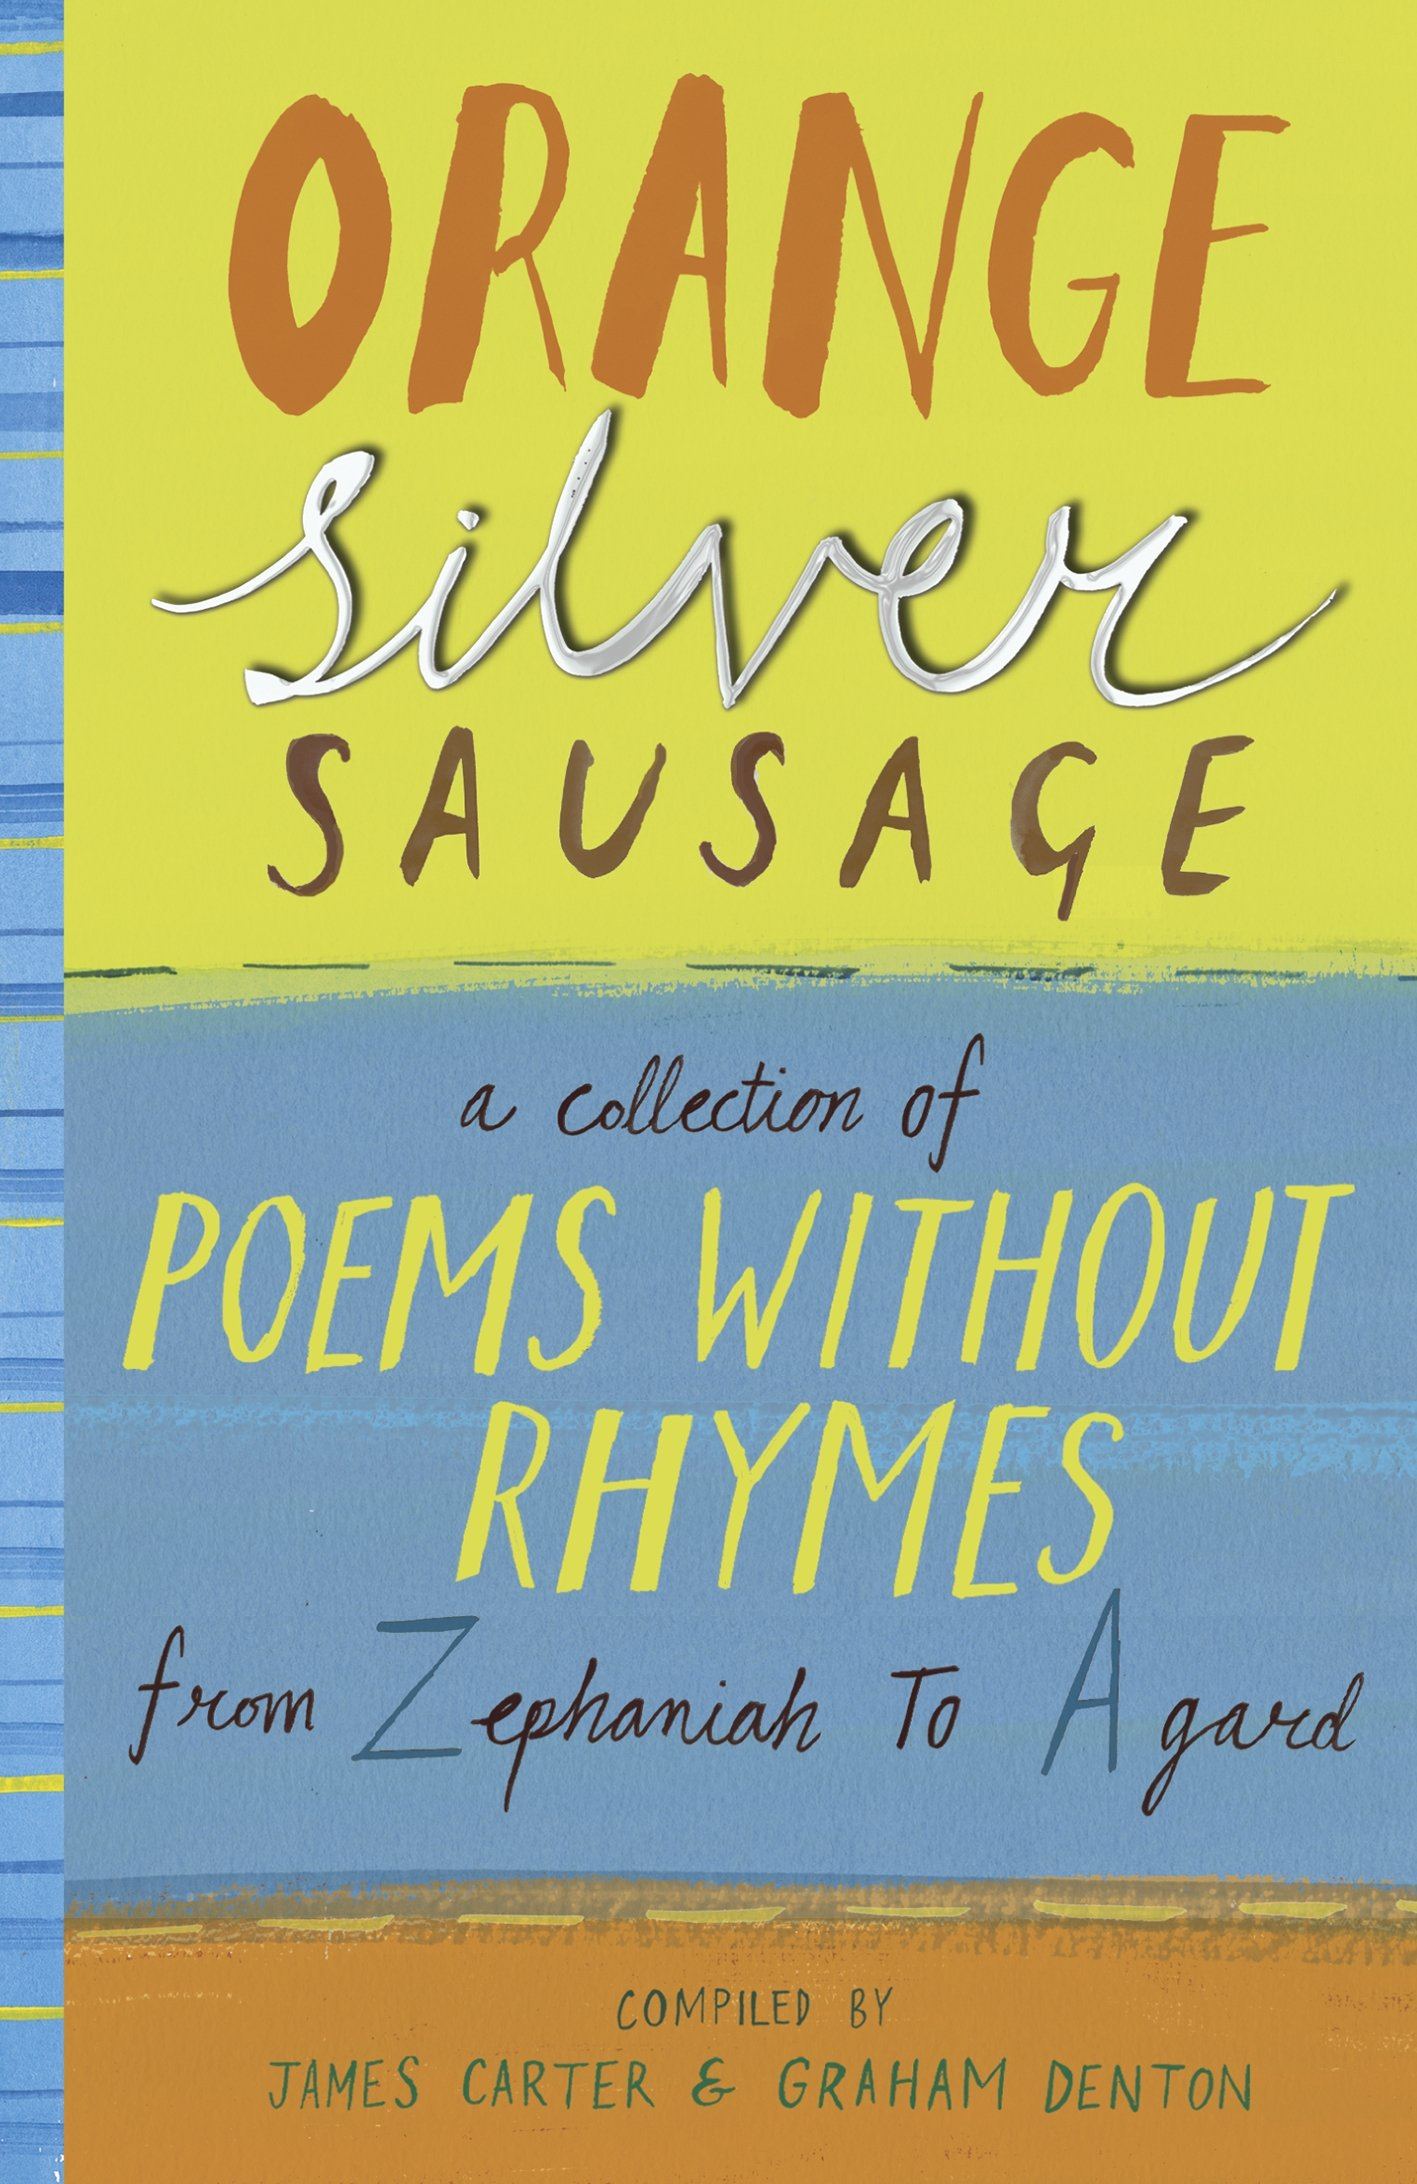 orange silver sausage a collection of poems without rhymes from